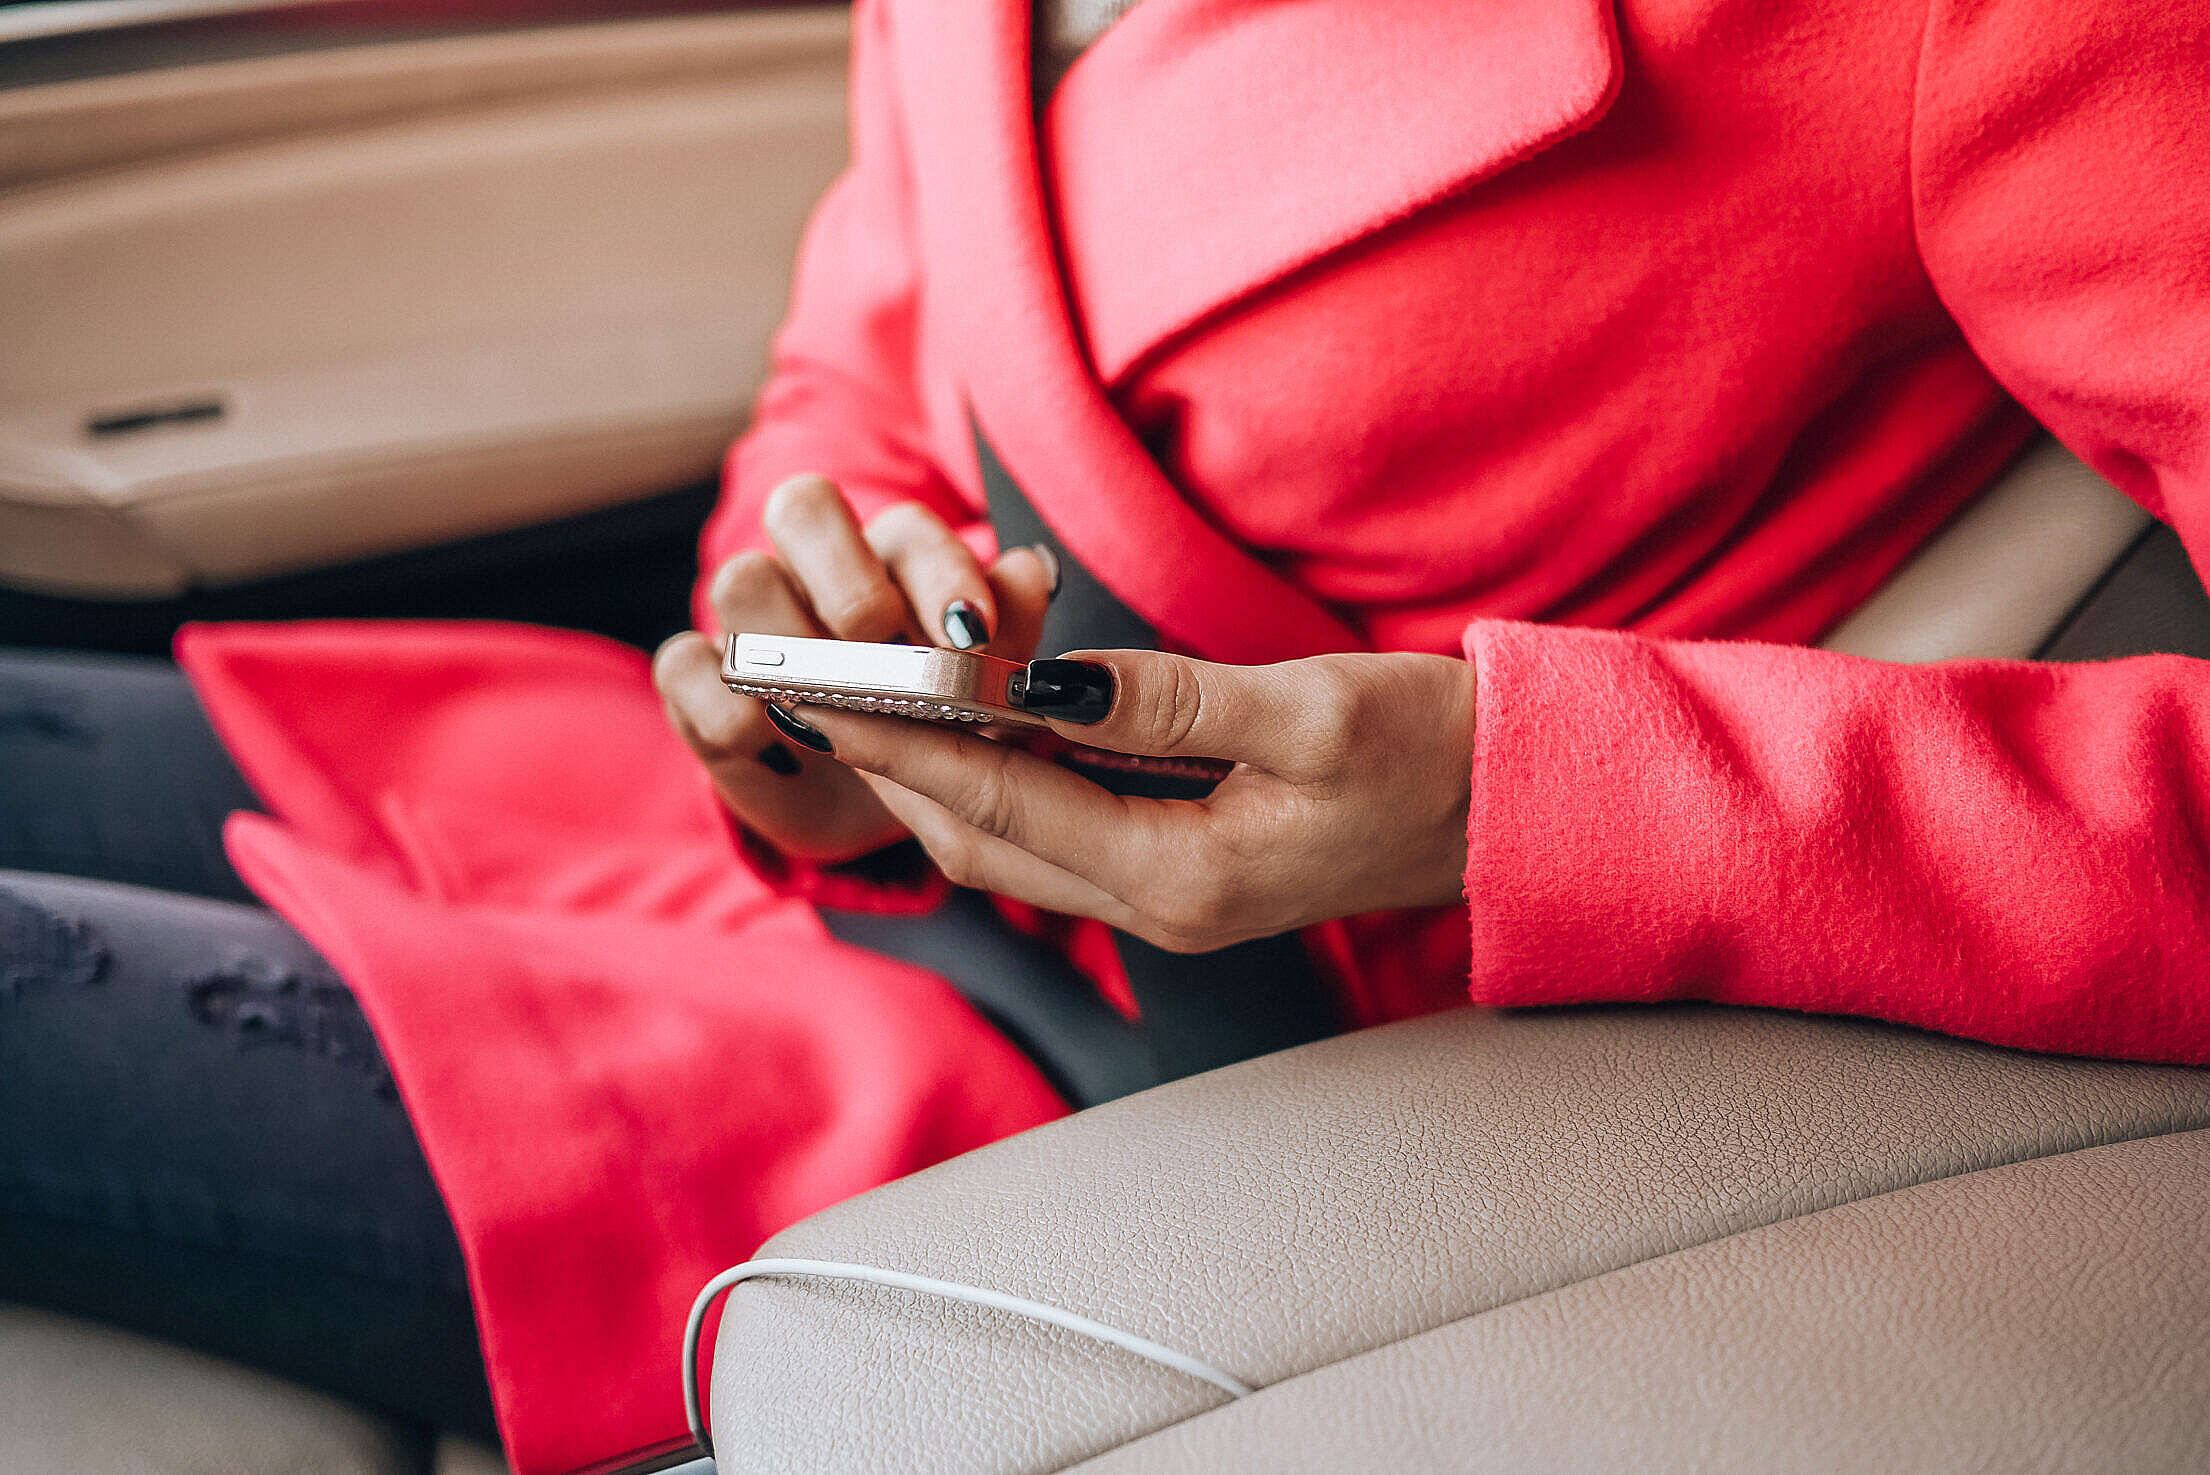 Nicely Dressed Woman Using Her Phone in a Car Free Stock Photo